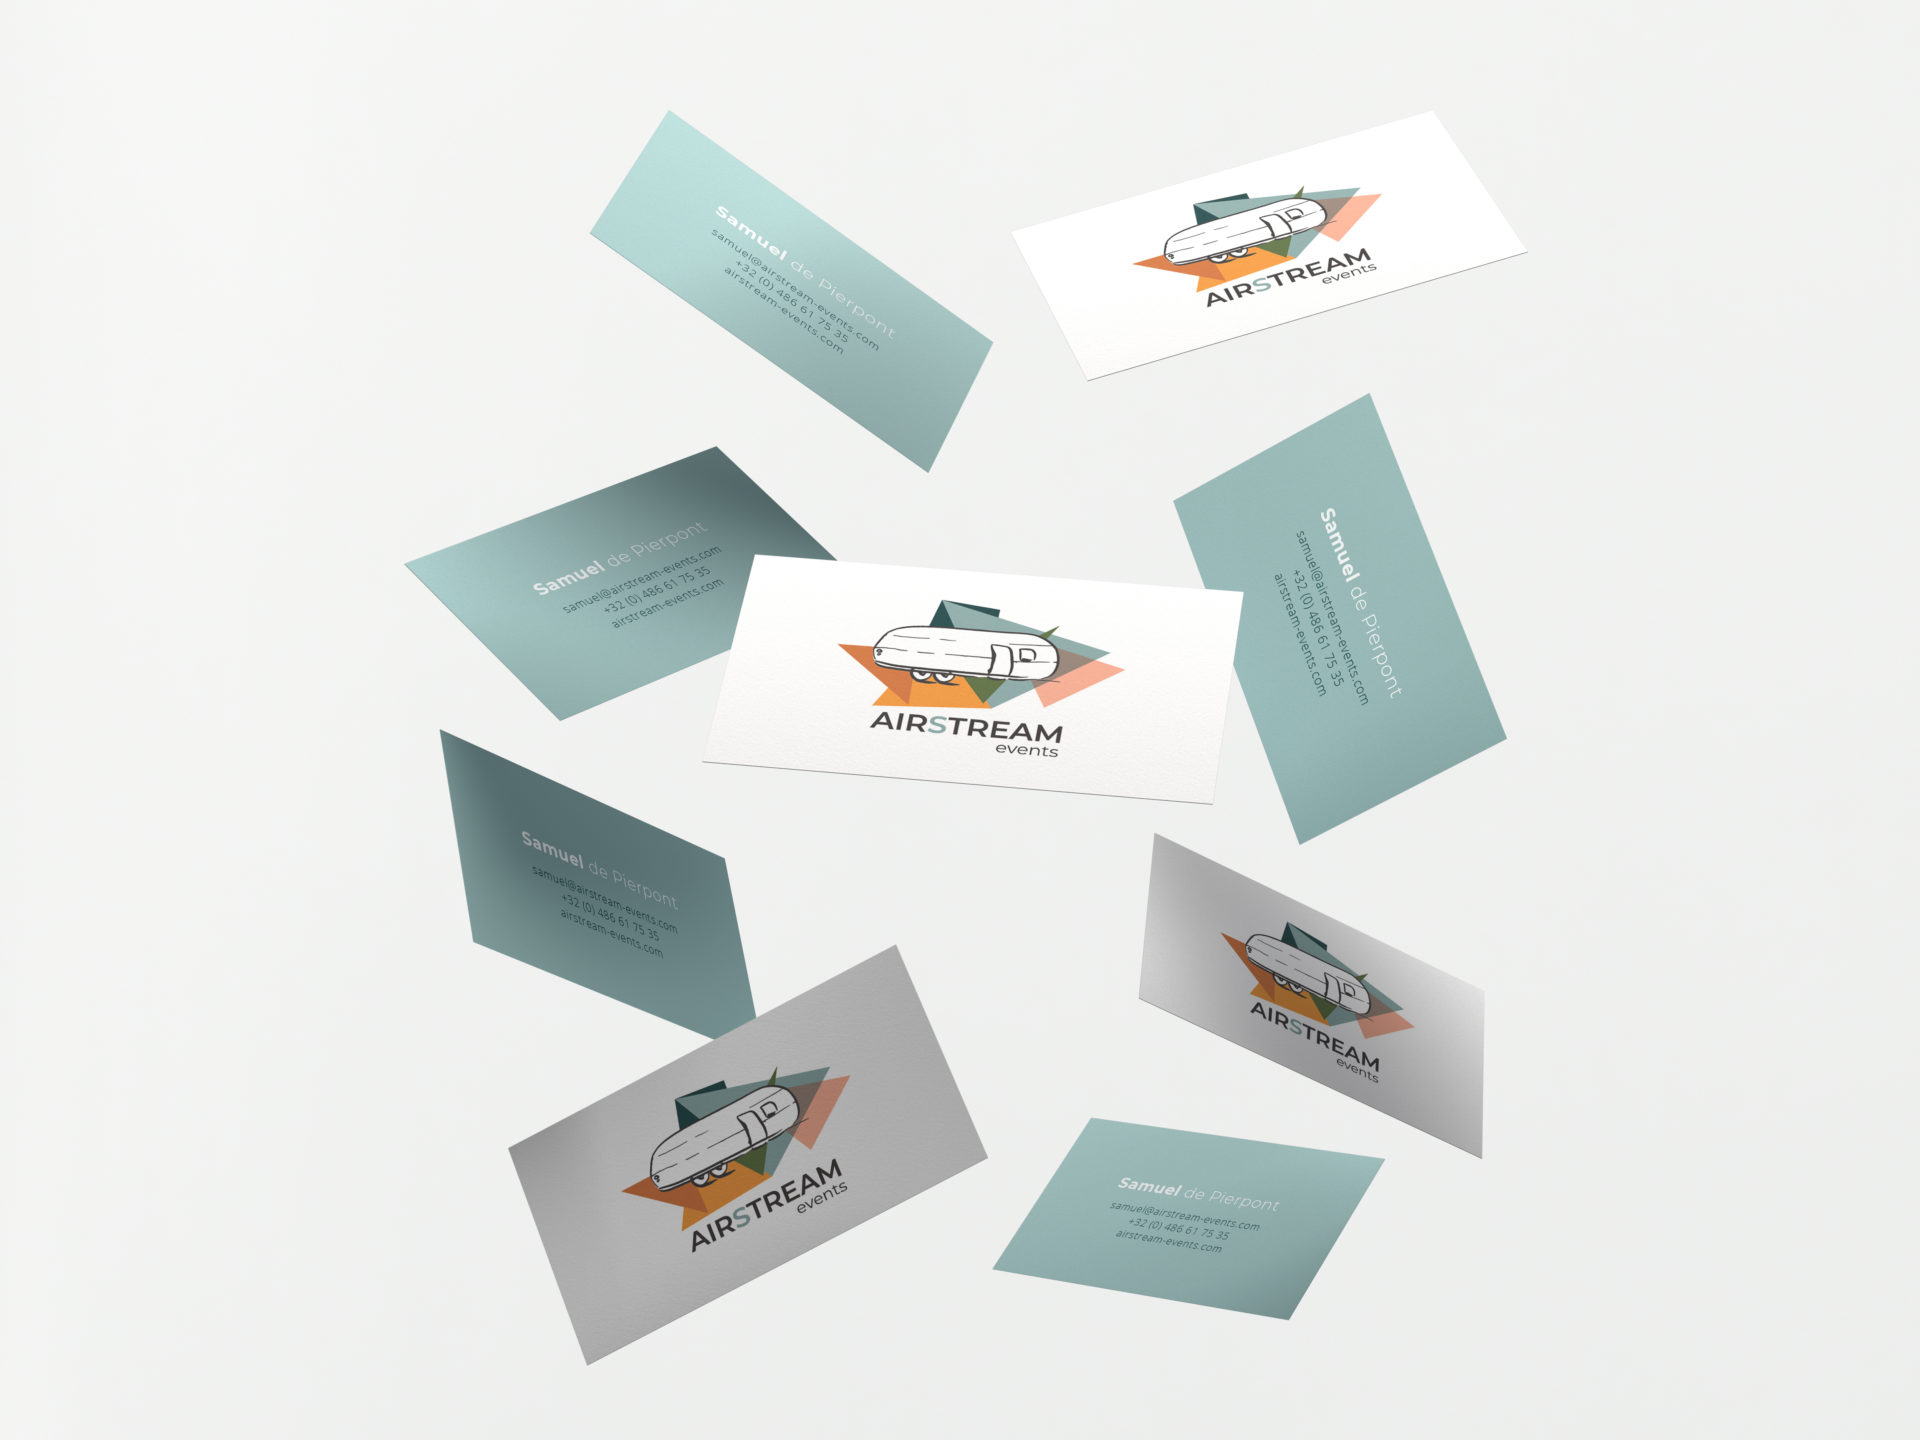 Airstream cartes